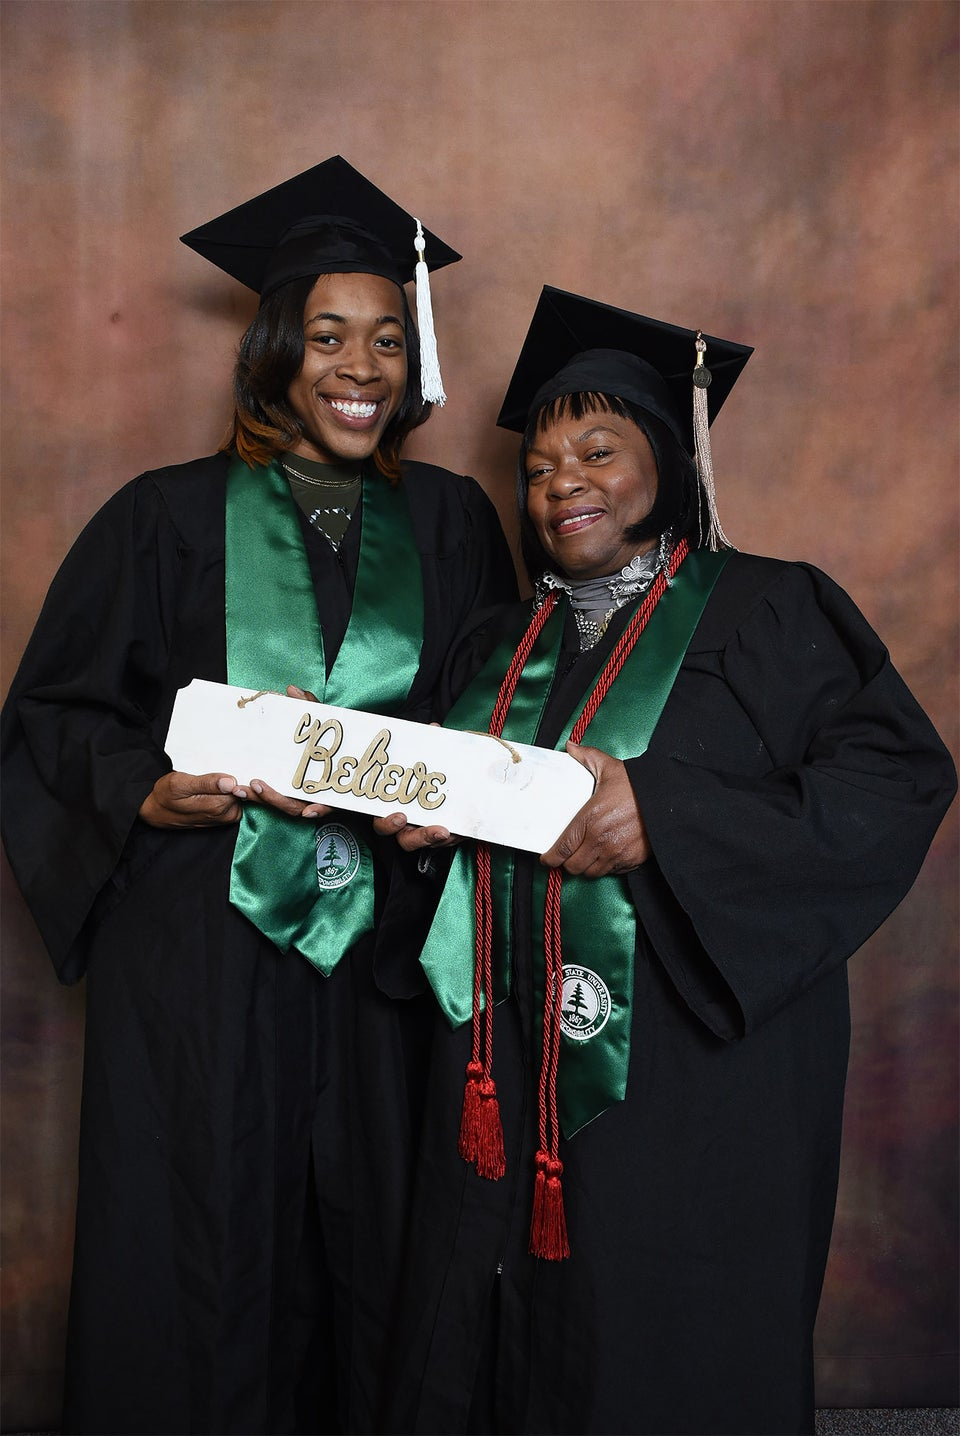 Granddaughter Graduates College Alongside Grandmother Who Raised Her: 'It Meant The World To Me'